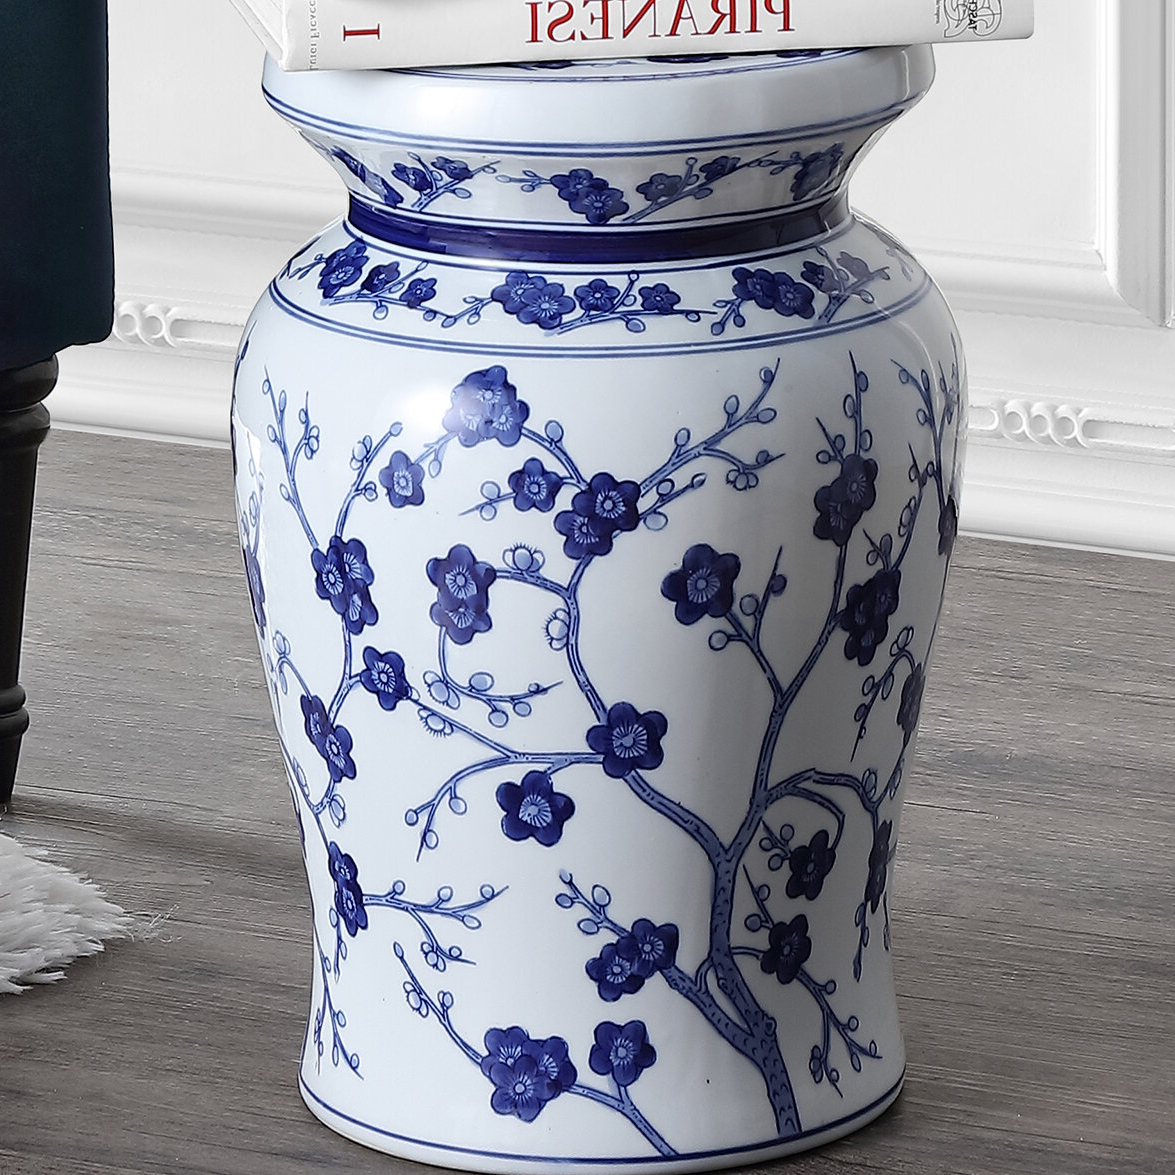 Wiese Cherry Blossom Ceramic Garden Stool Within Favorite Williar Cherry Blossom Ceramic Garden Stools (View 2 of 30)